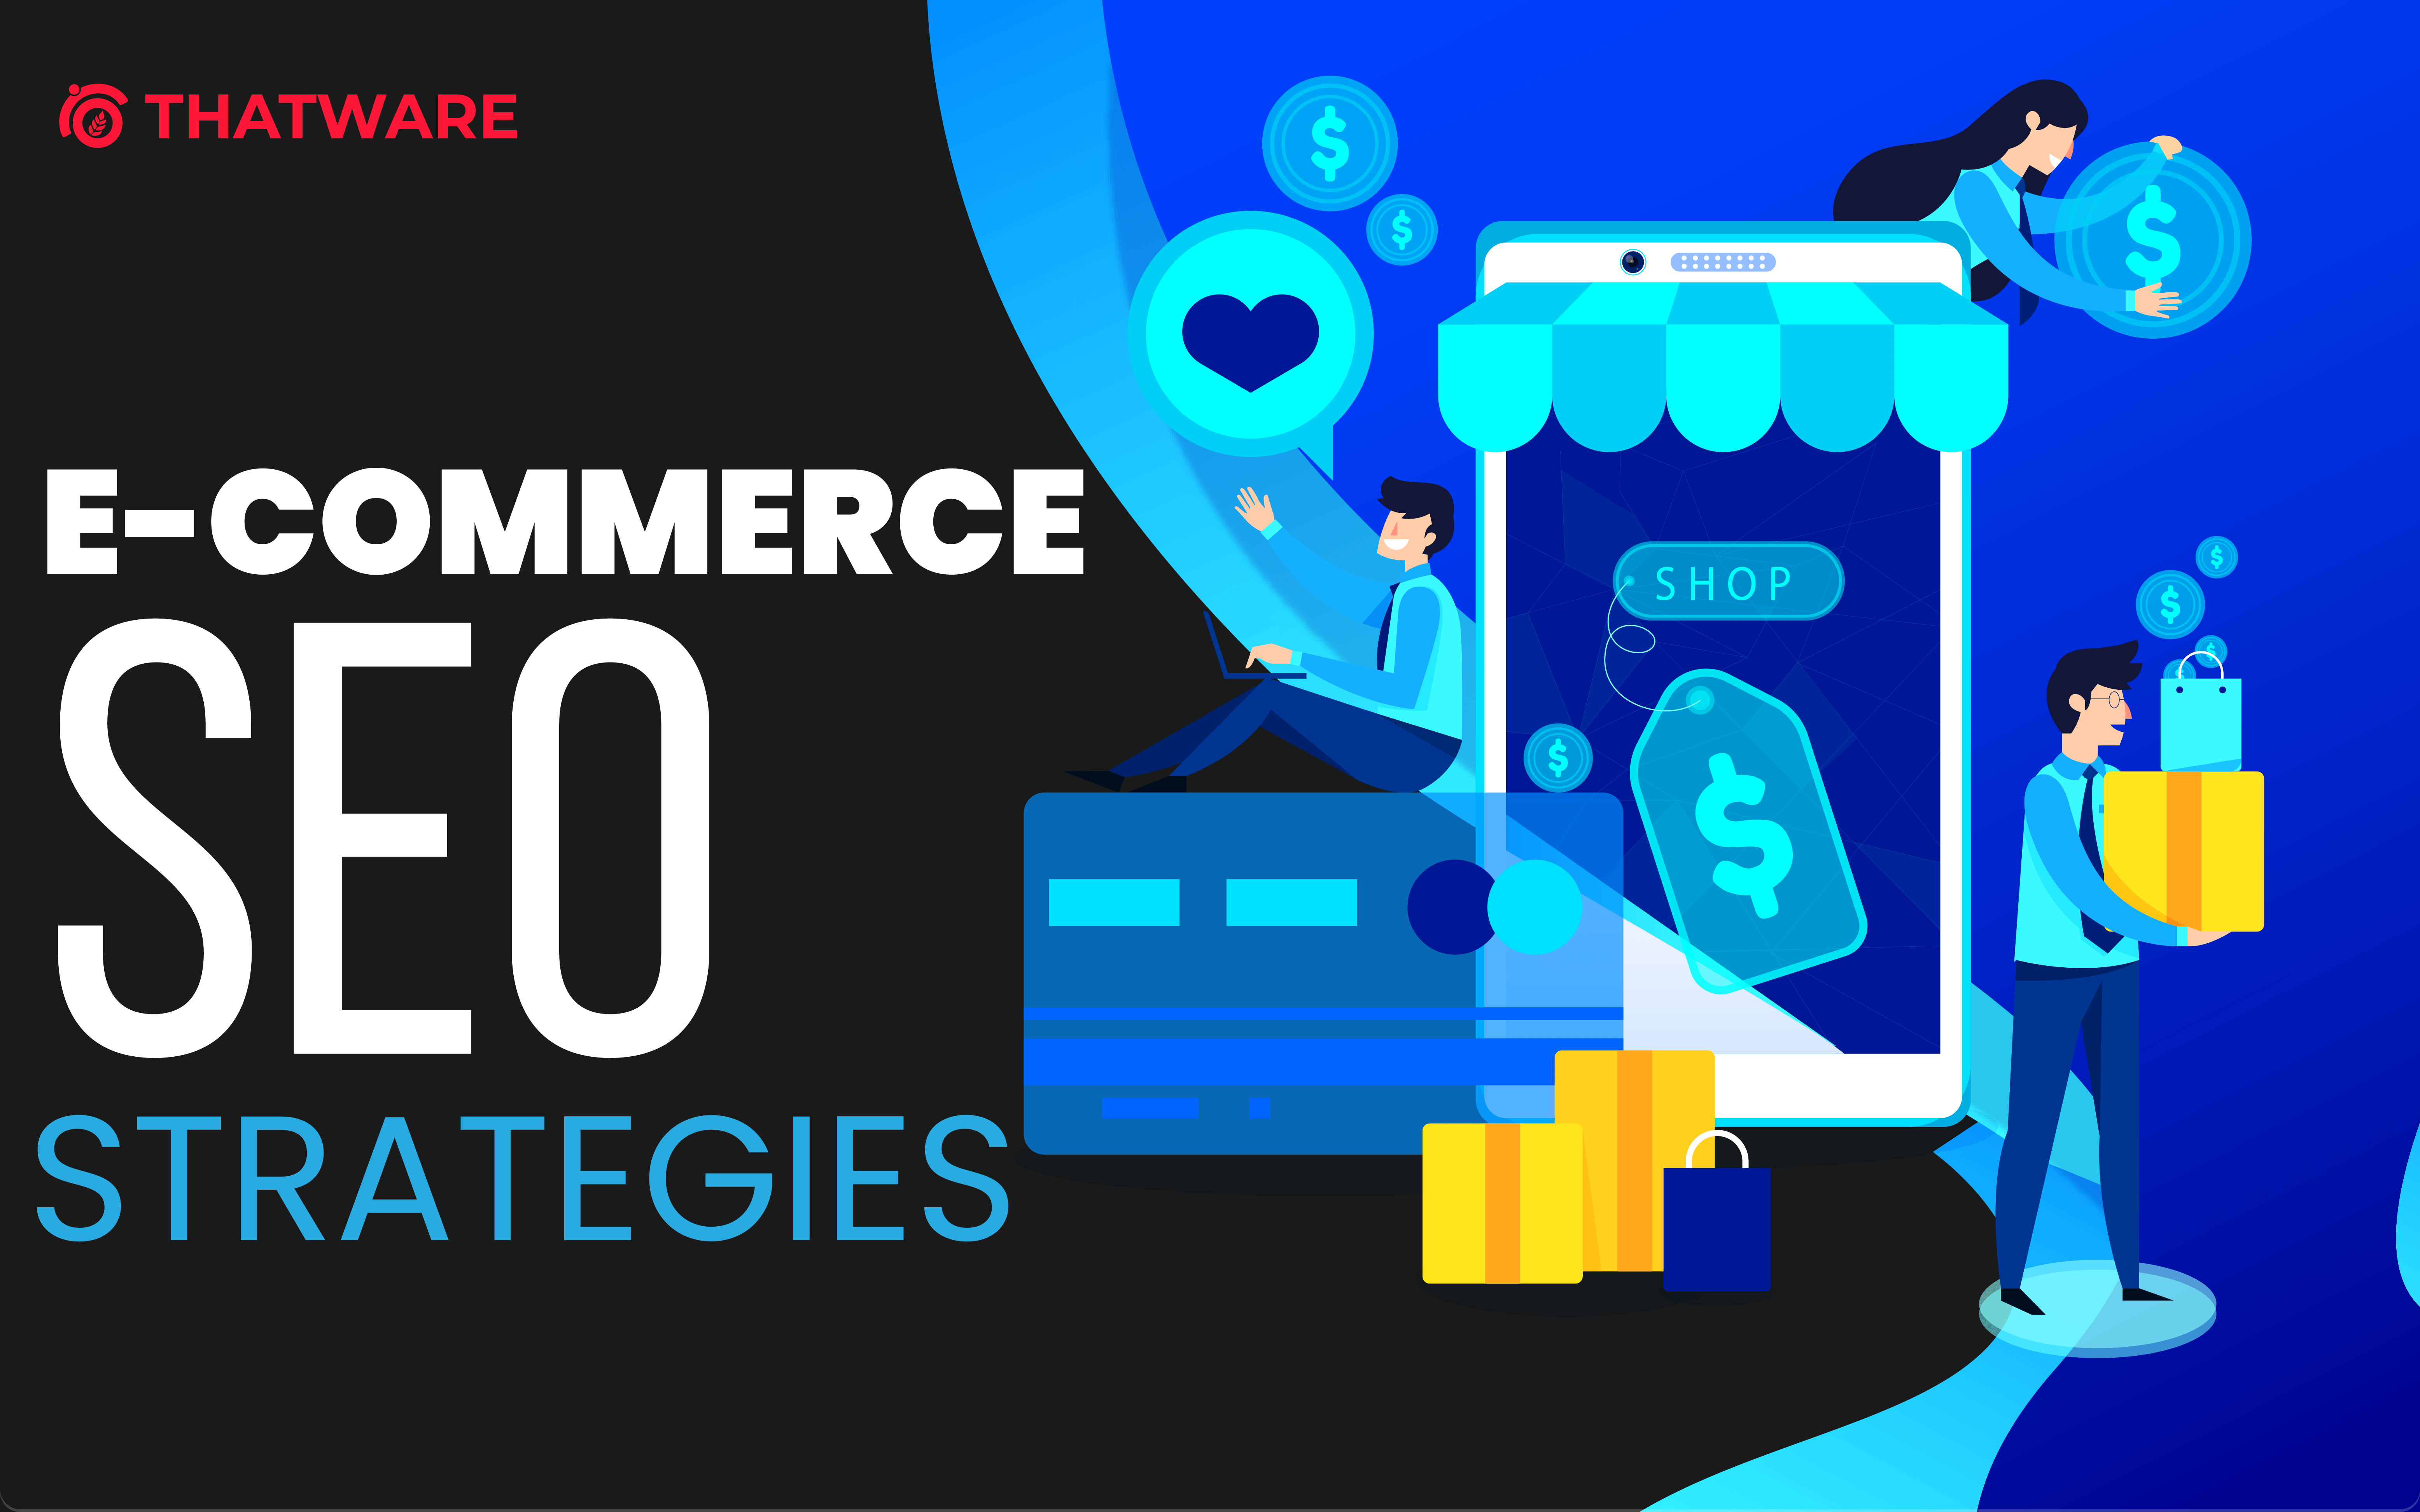 eCommerce for SEO